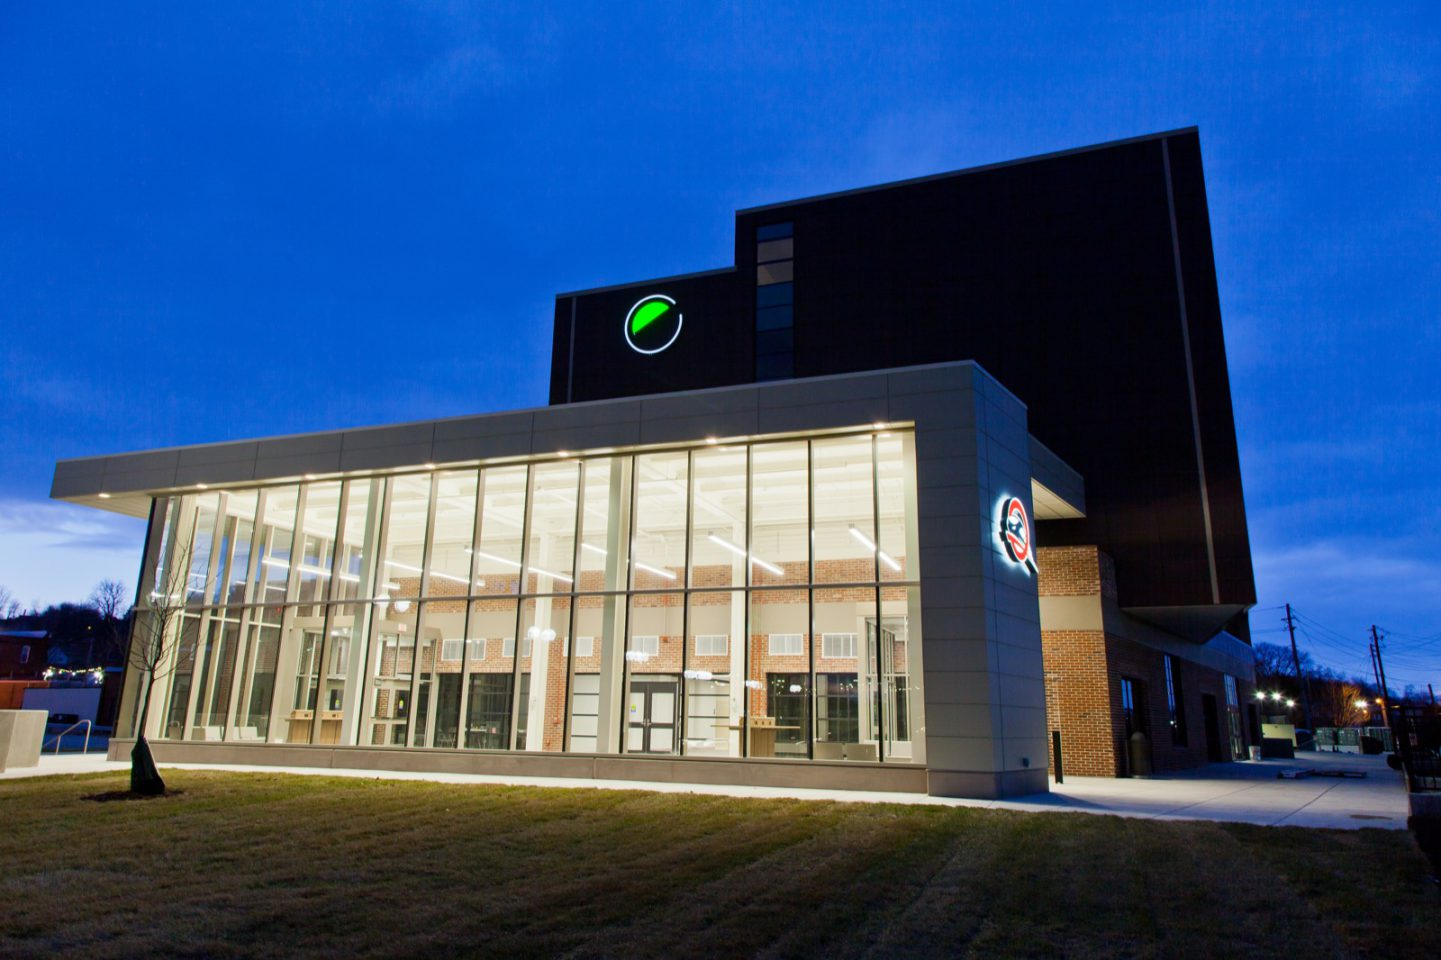 The Q exterior at night